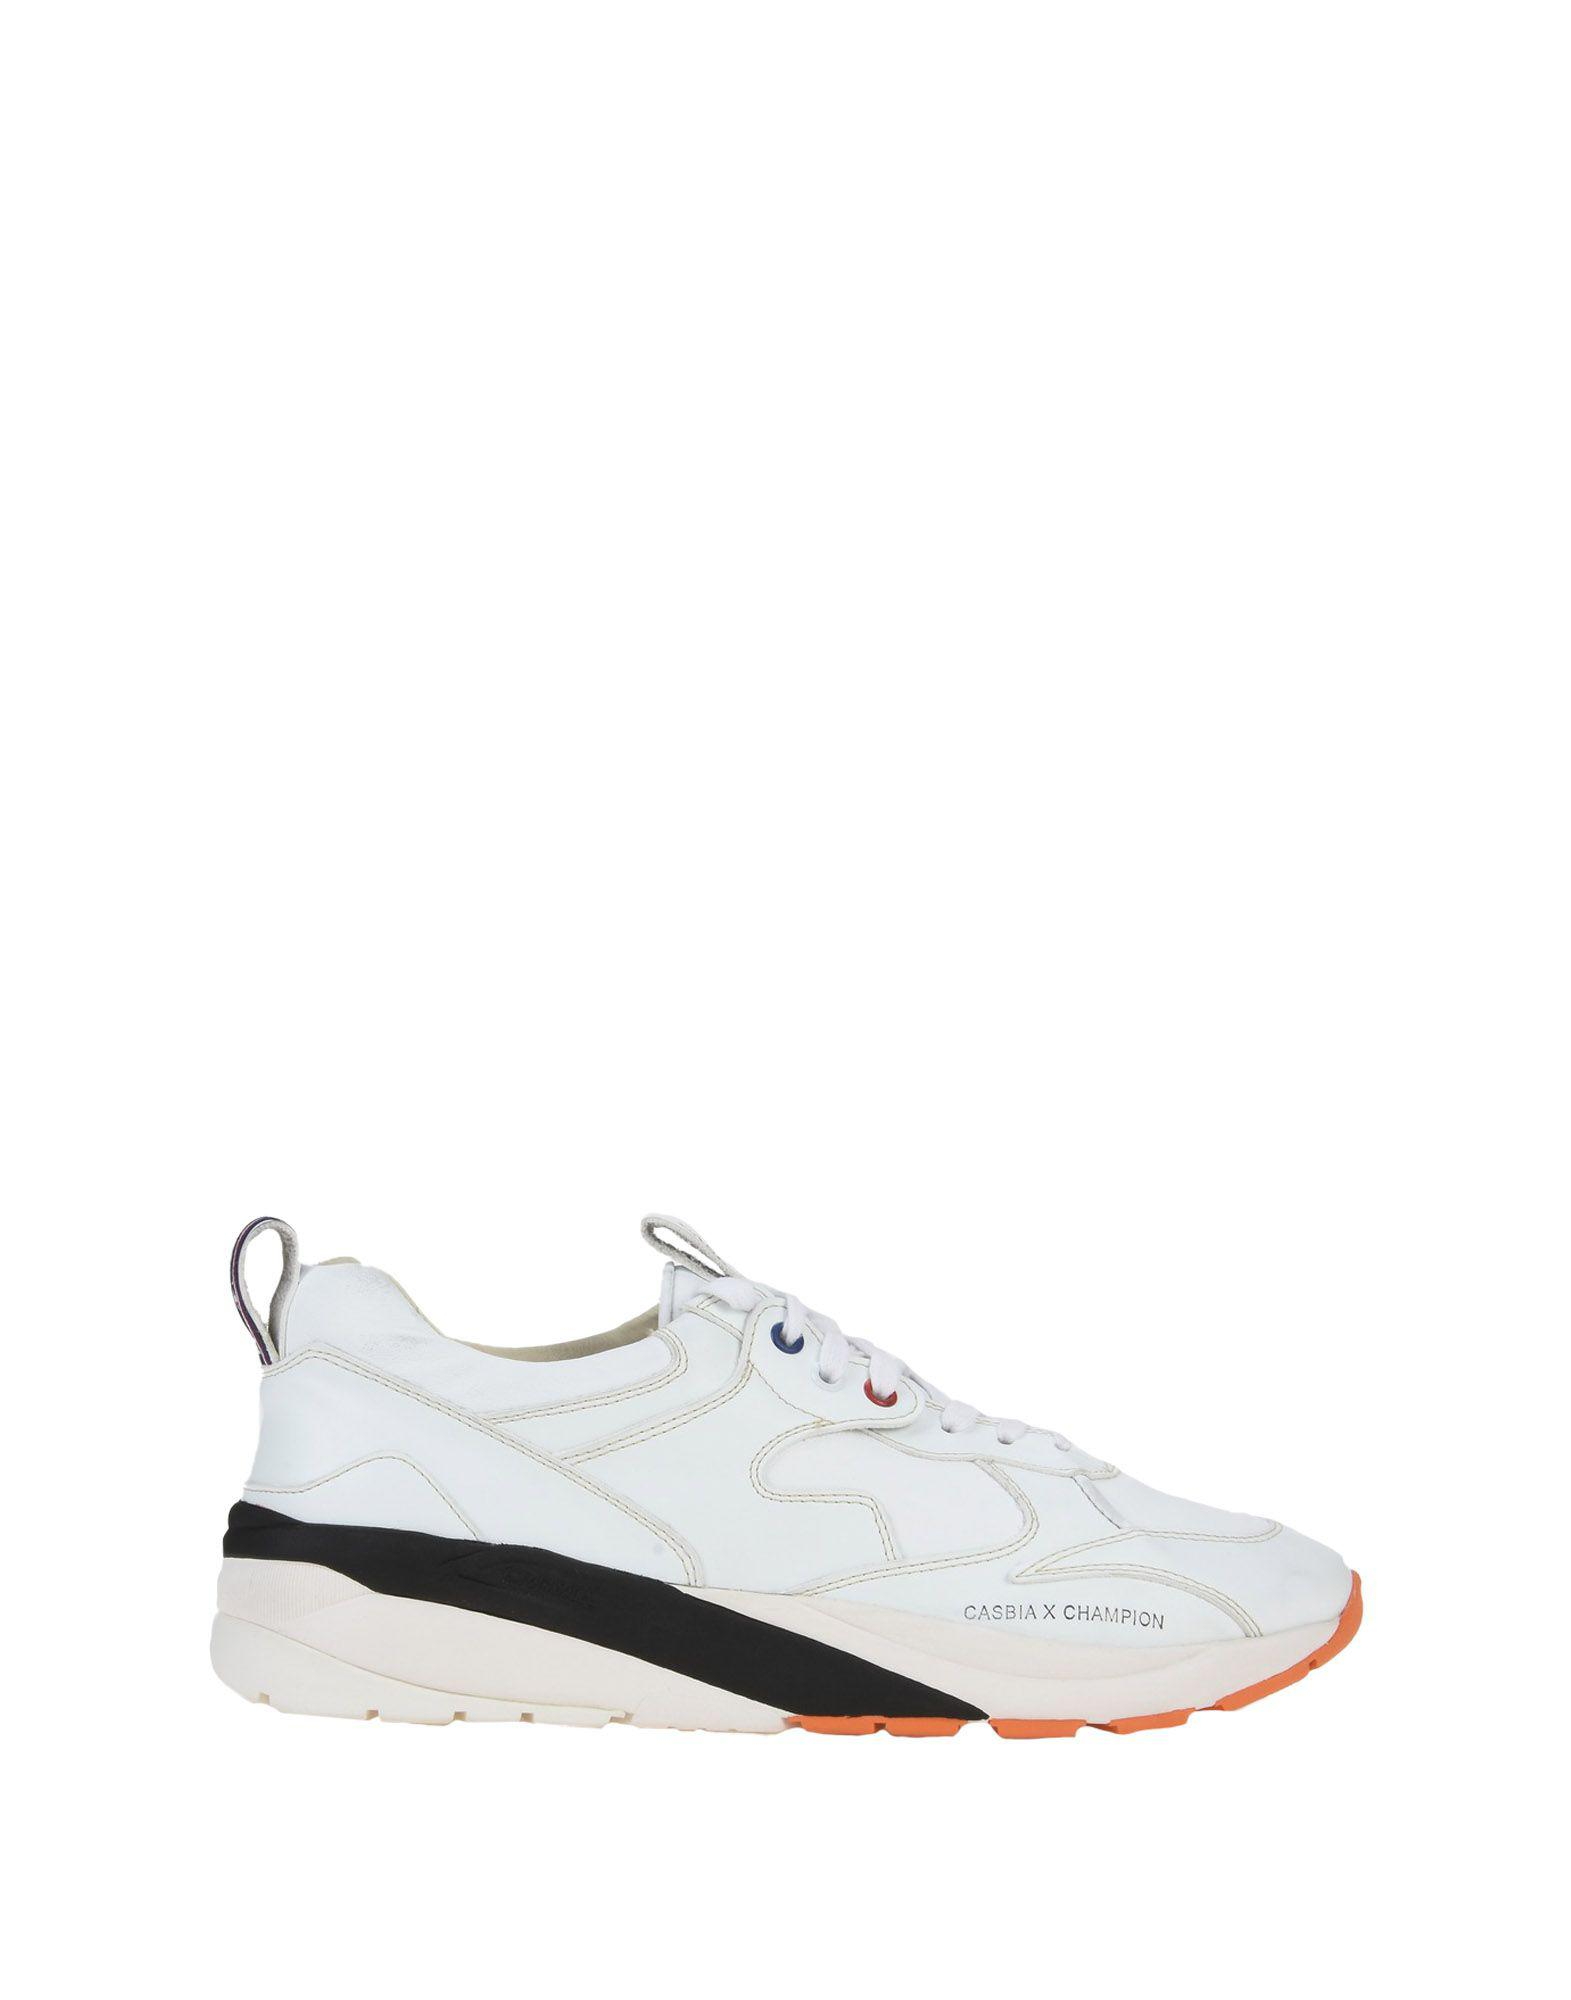 uk availability 0fa8c 51fe0 champion-White-Low-tops-Sneakers.jpeg